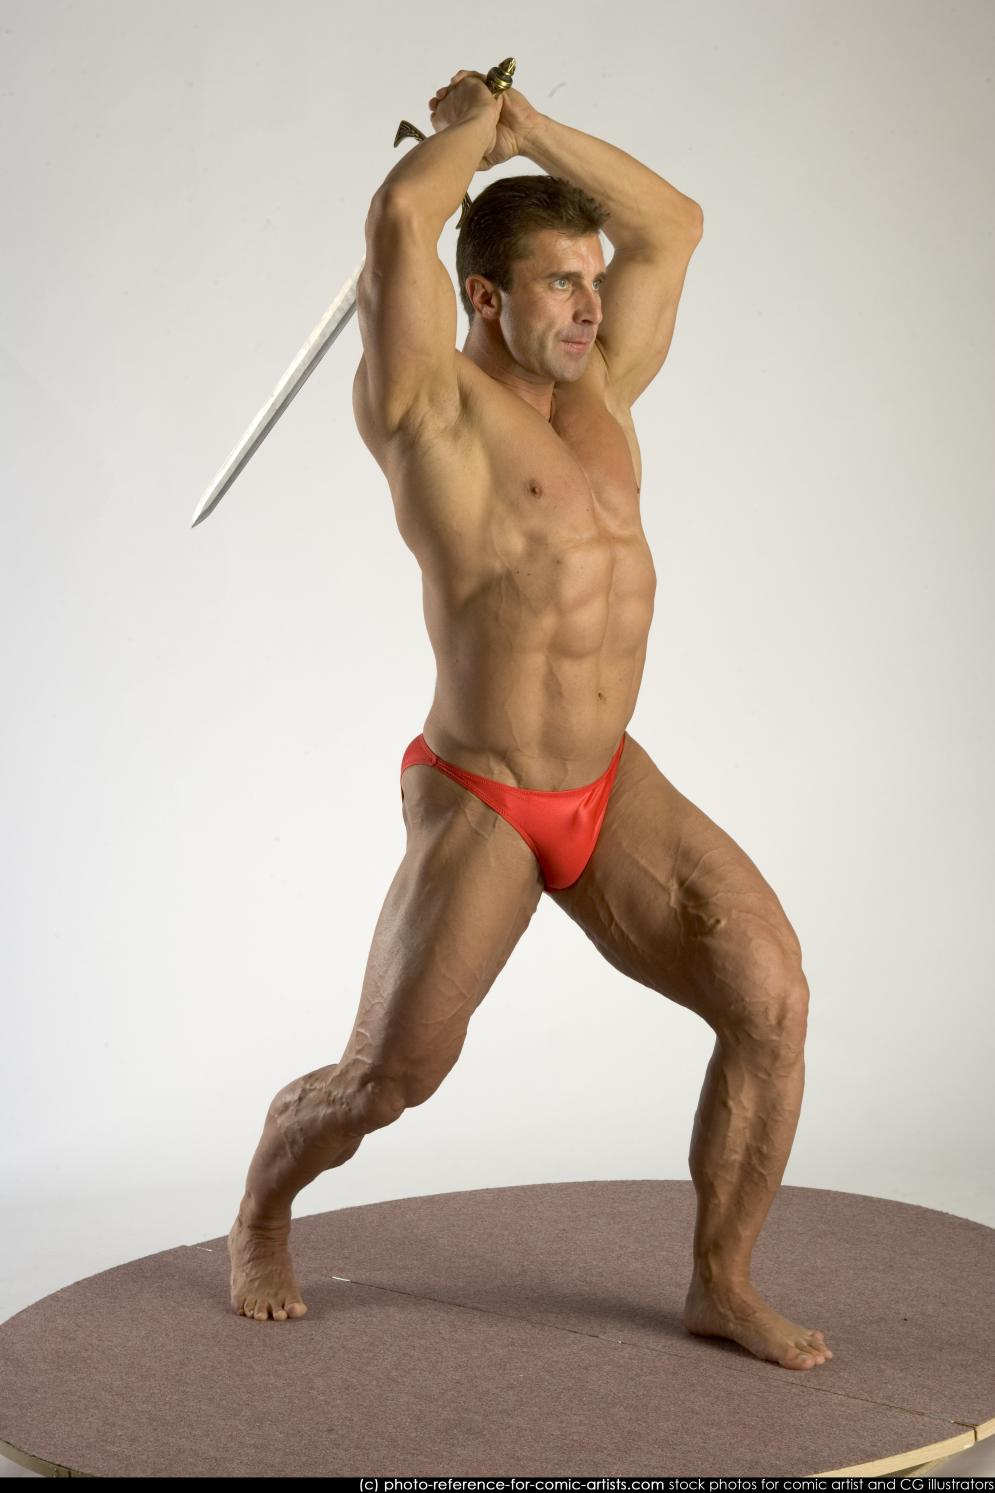 Image from Aggressive Muscular Guys - 292bodybuilder2_sword_attack_0007.jpg